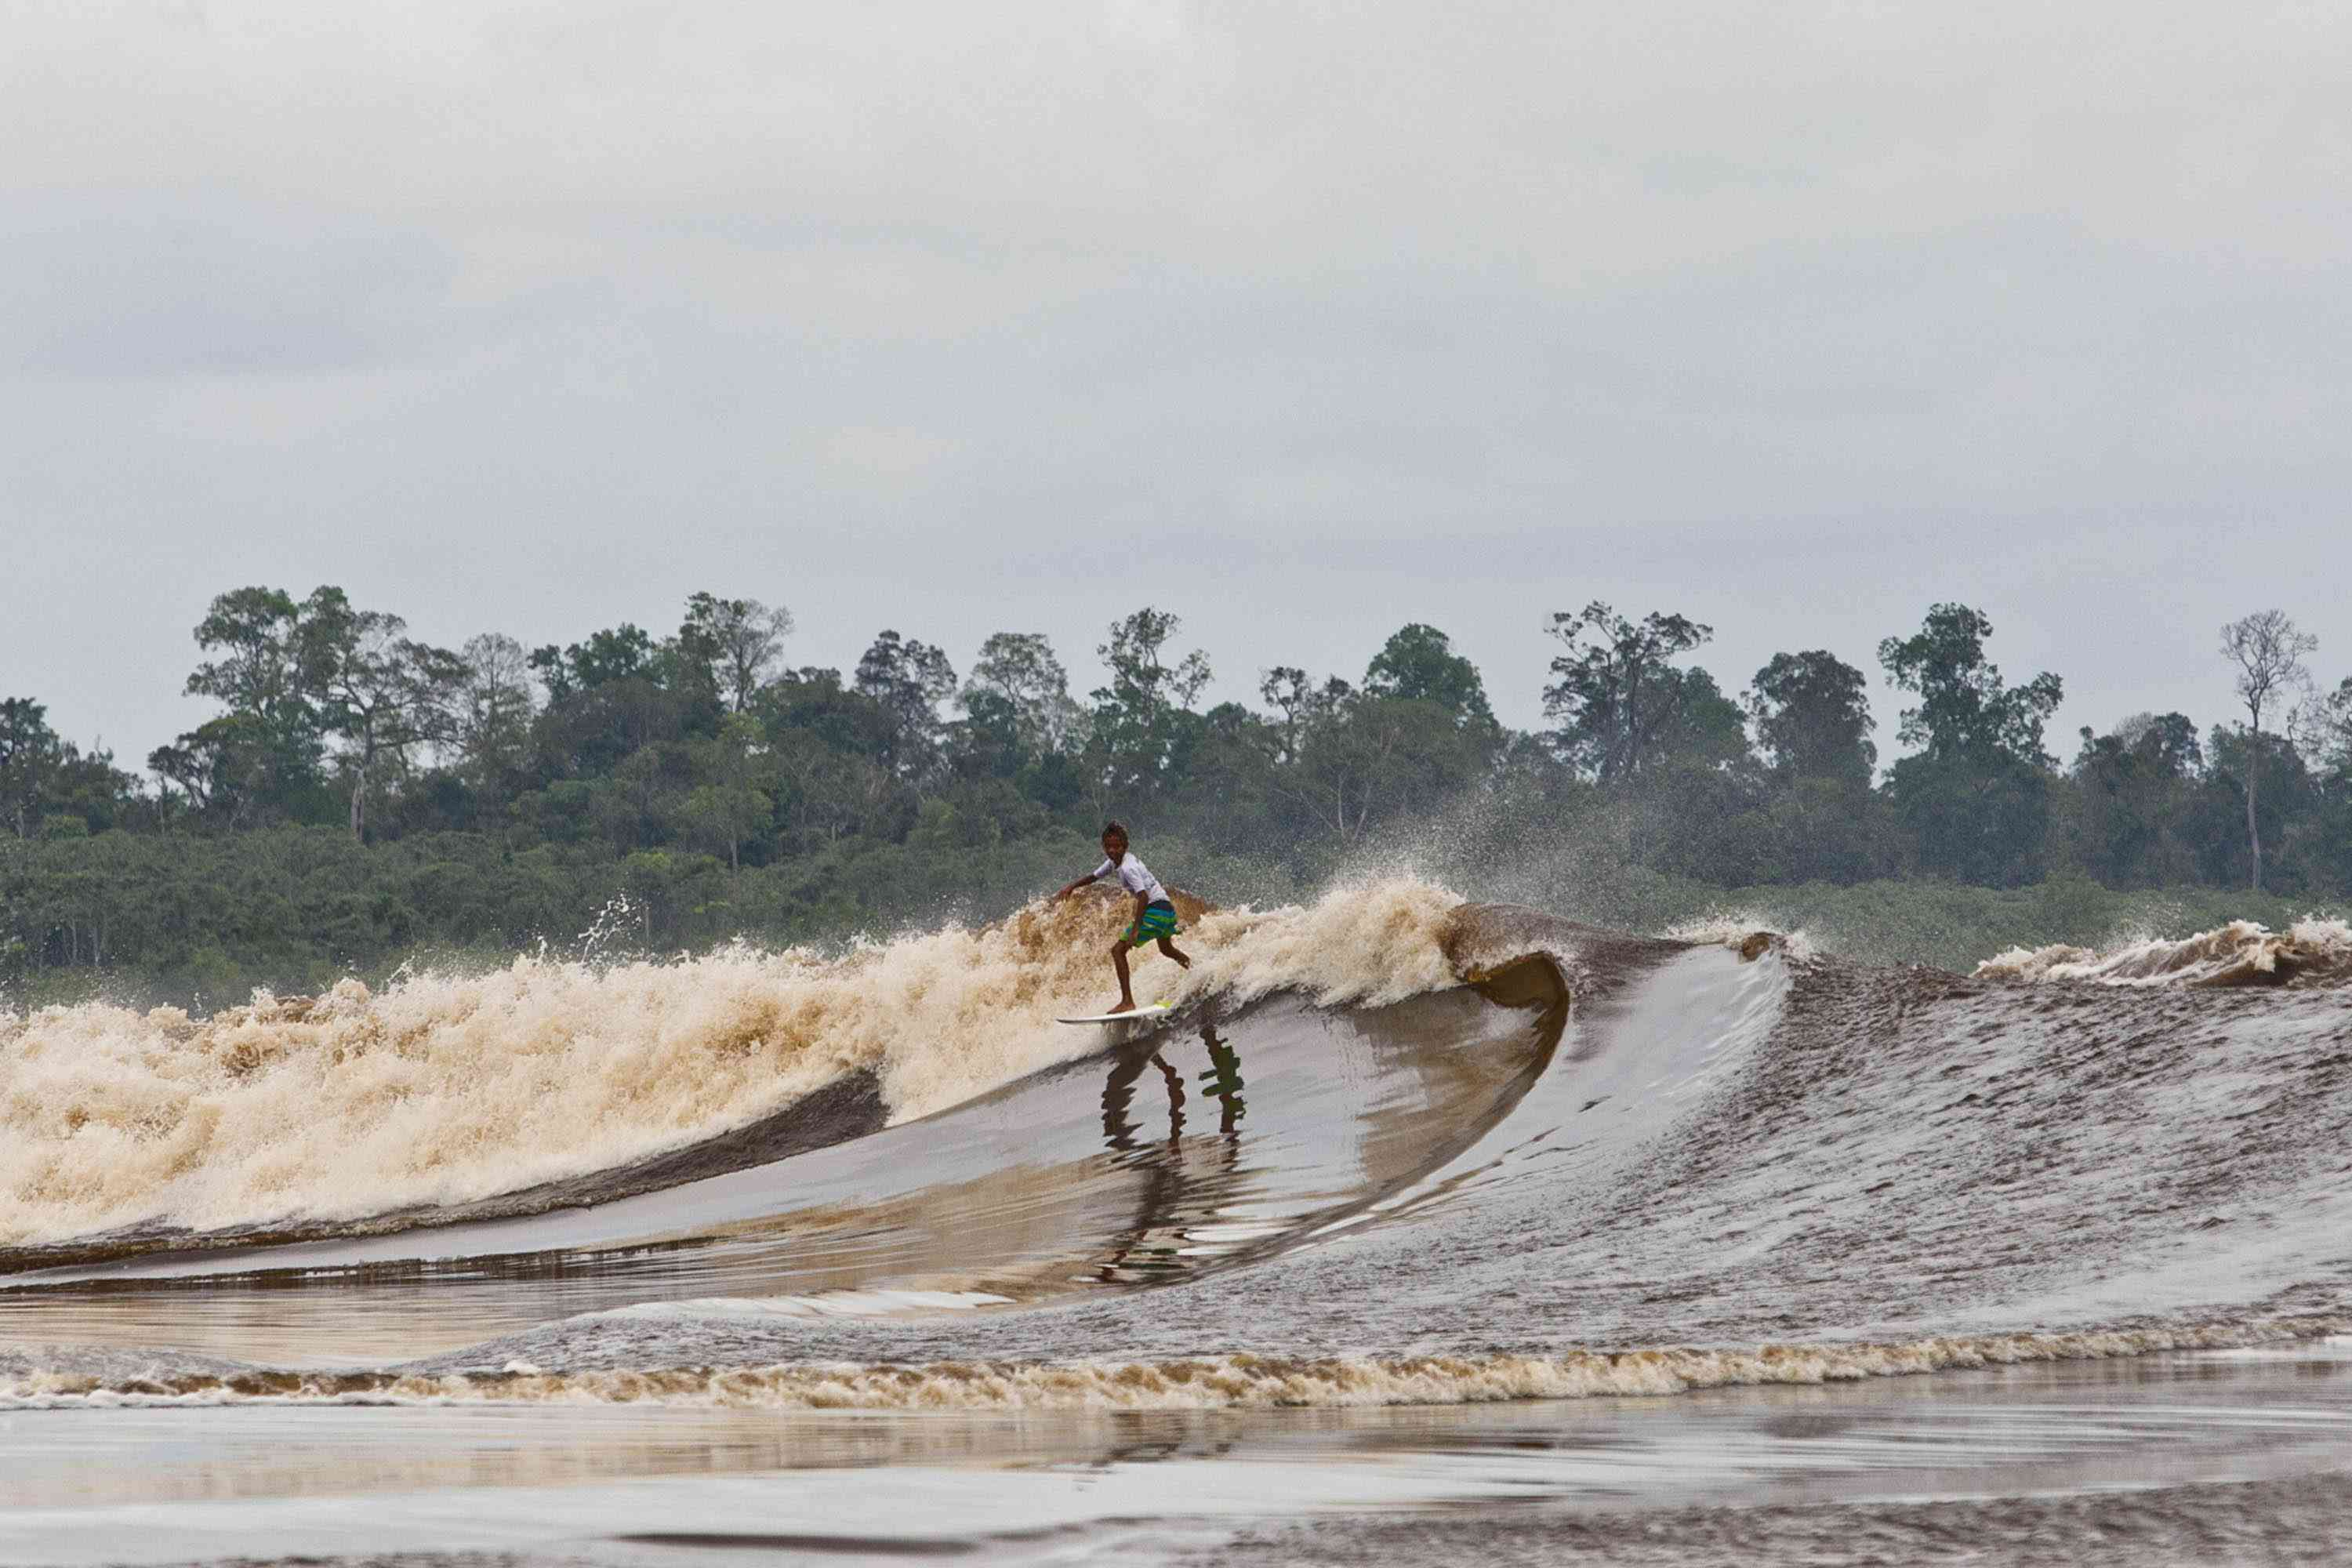 Surfer riding 'Bono' Tidal Wave Of The Kampar River with a forest of tall, green trees in the background and cloudy skies above